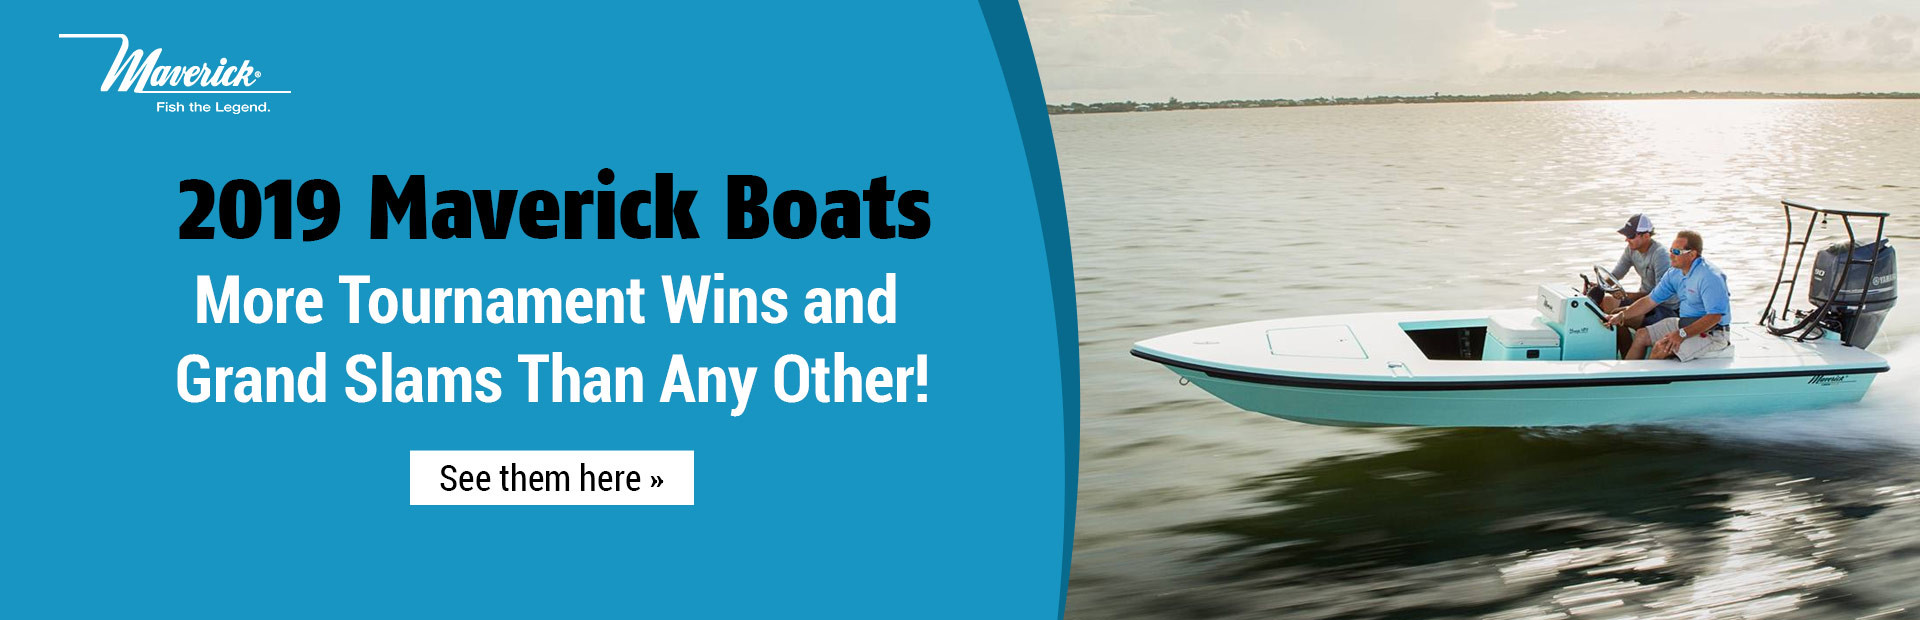 2019 Maverick Boats: Click here to view the models.